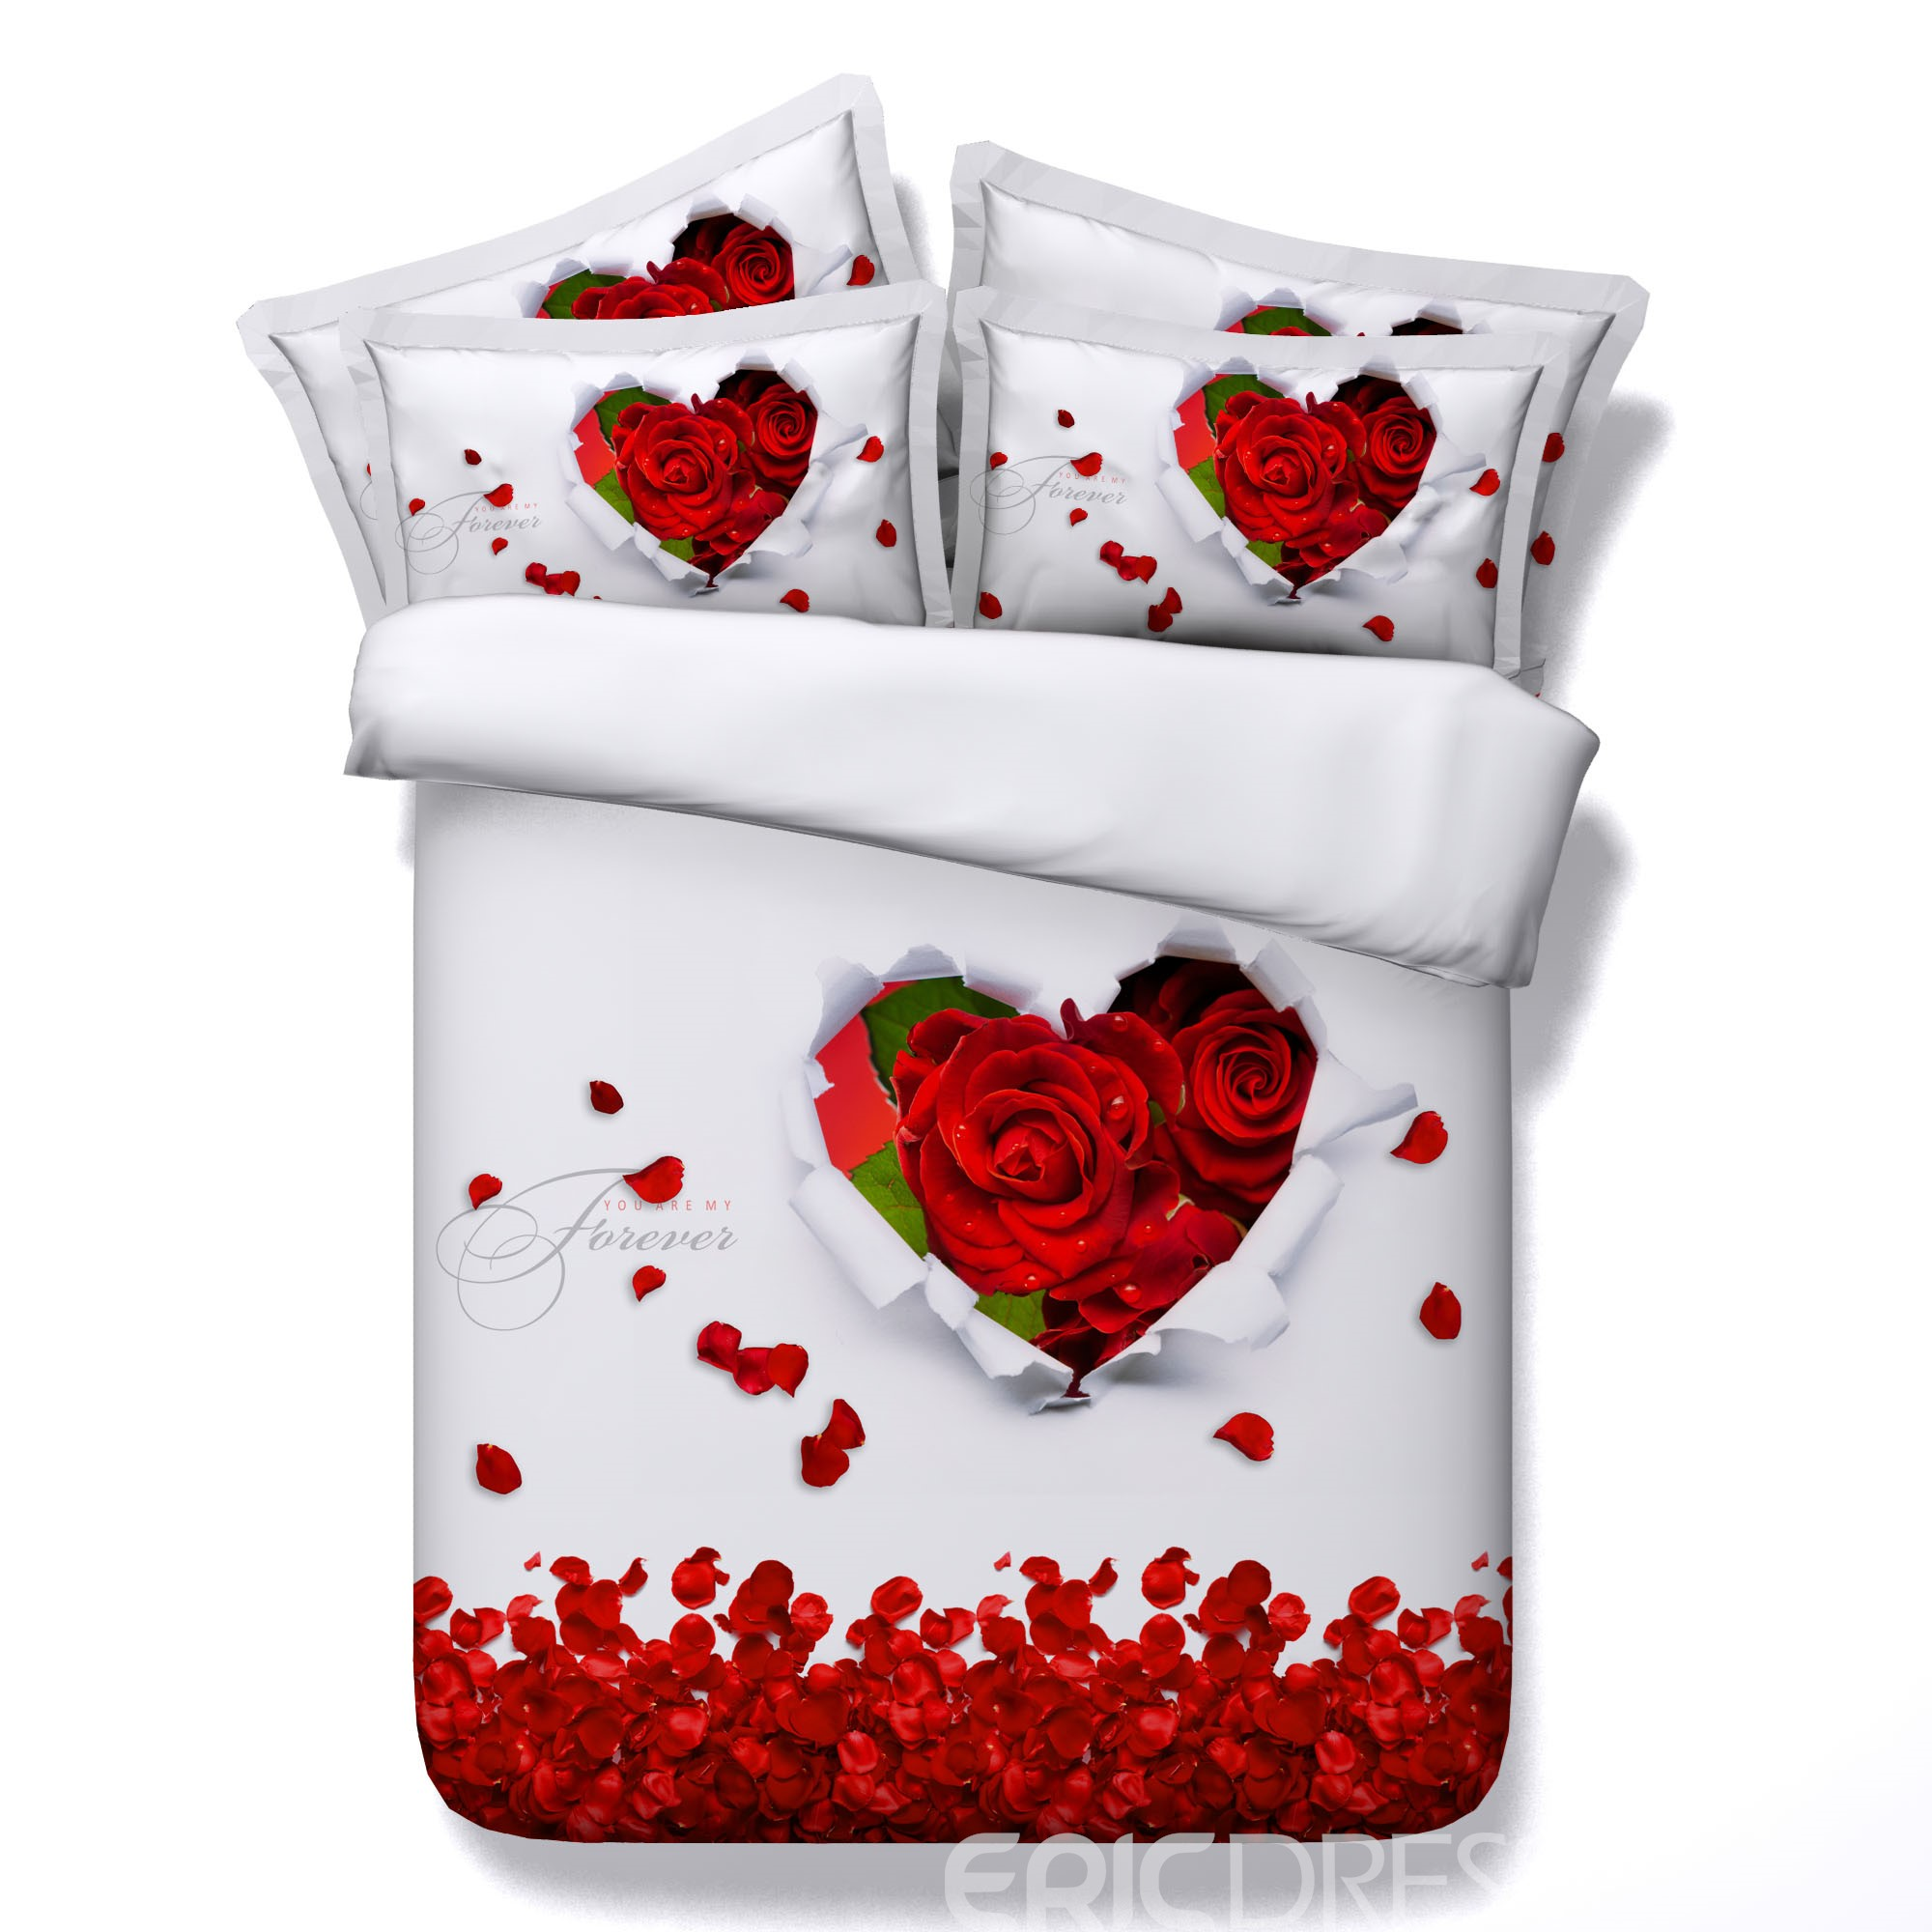 Vivilinen 3D Heart-shaped Red Rose and Petals Printed 4-Piece White Bedding Sets